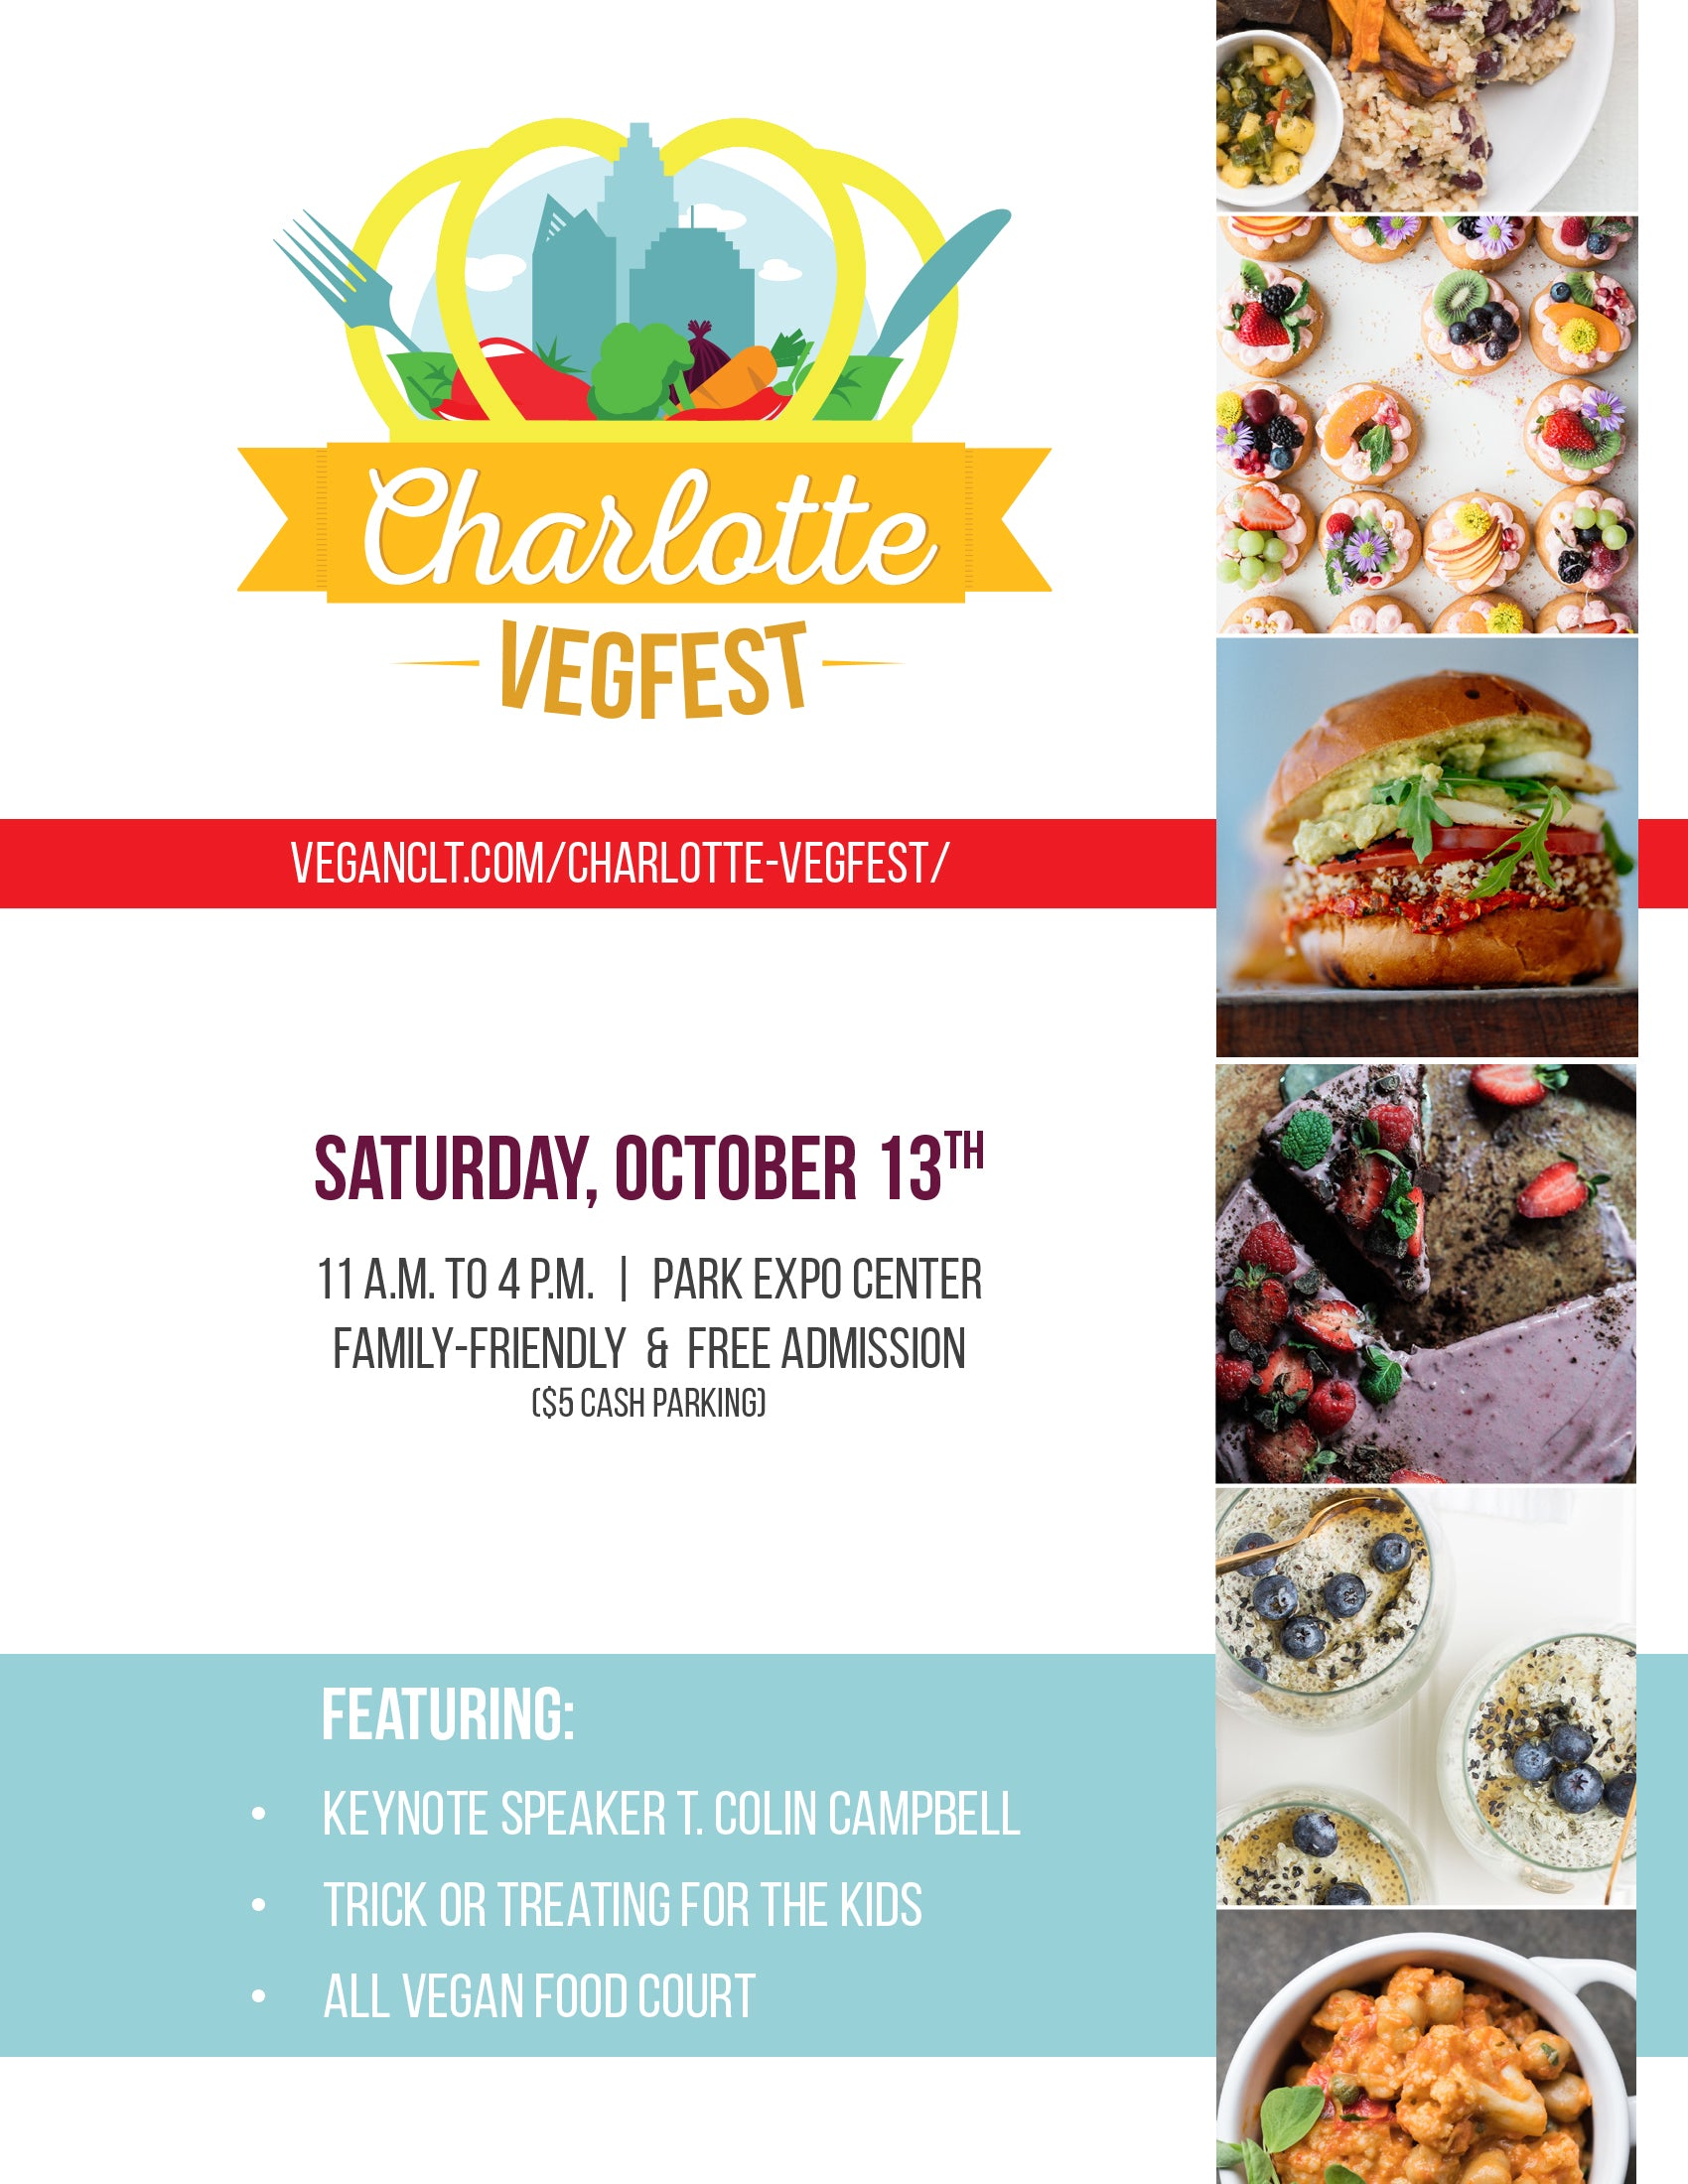 Charlotte Vegfest 2018 was a smashing success! Read on for some of our favorite moments...